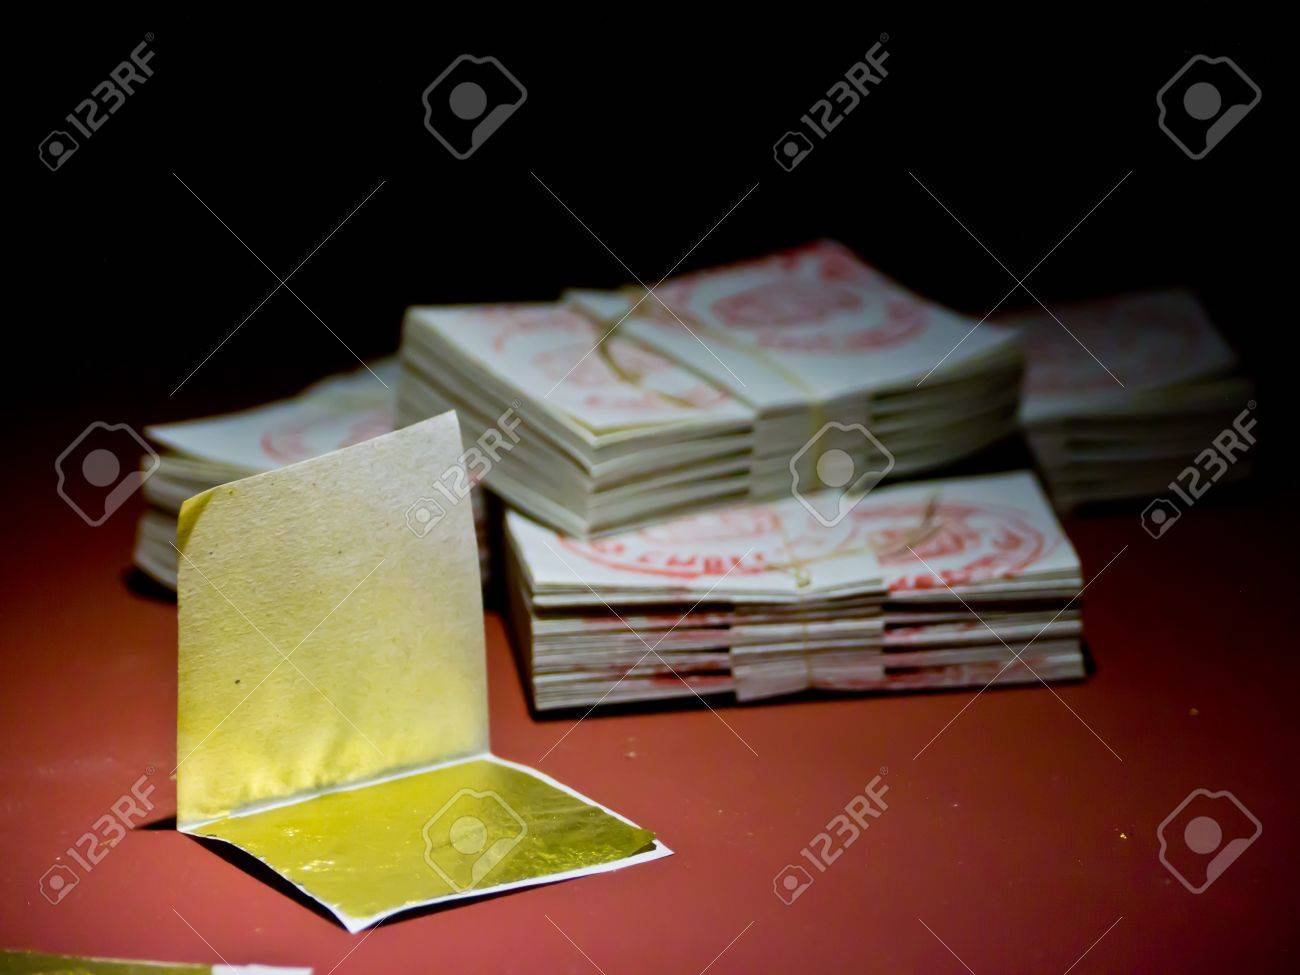 Gold leaf or gold foil is gold that has been hammered into extremely